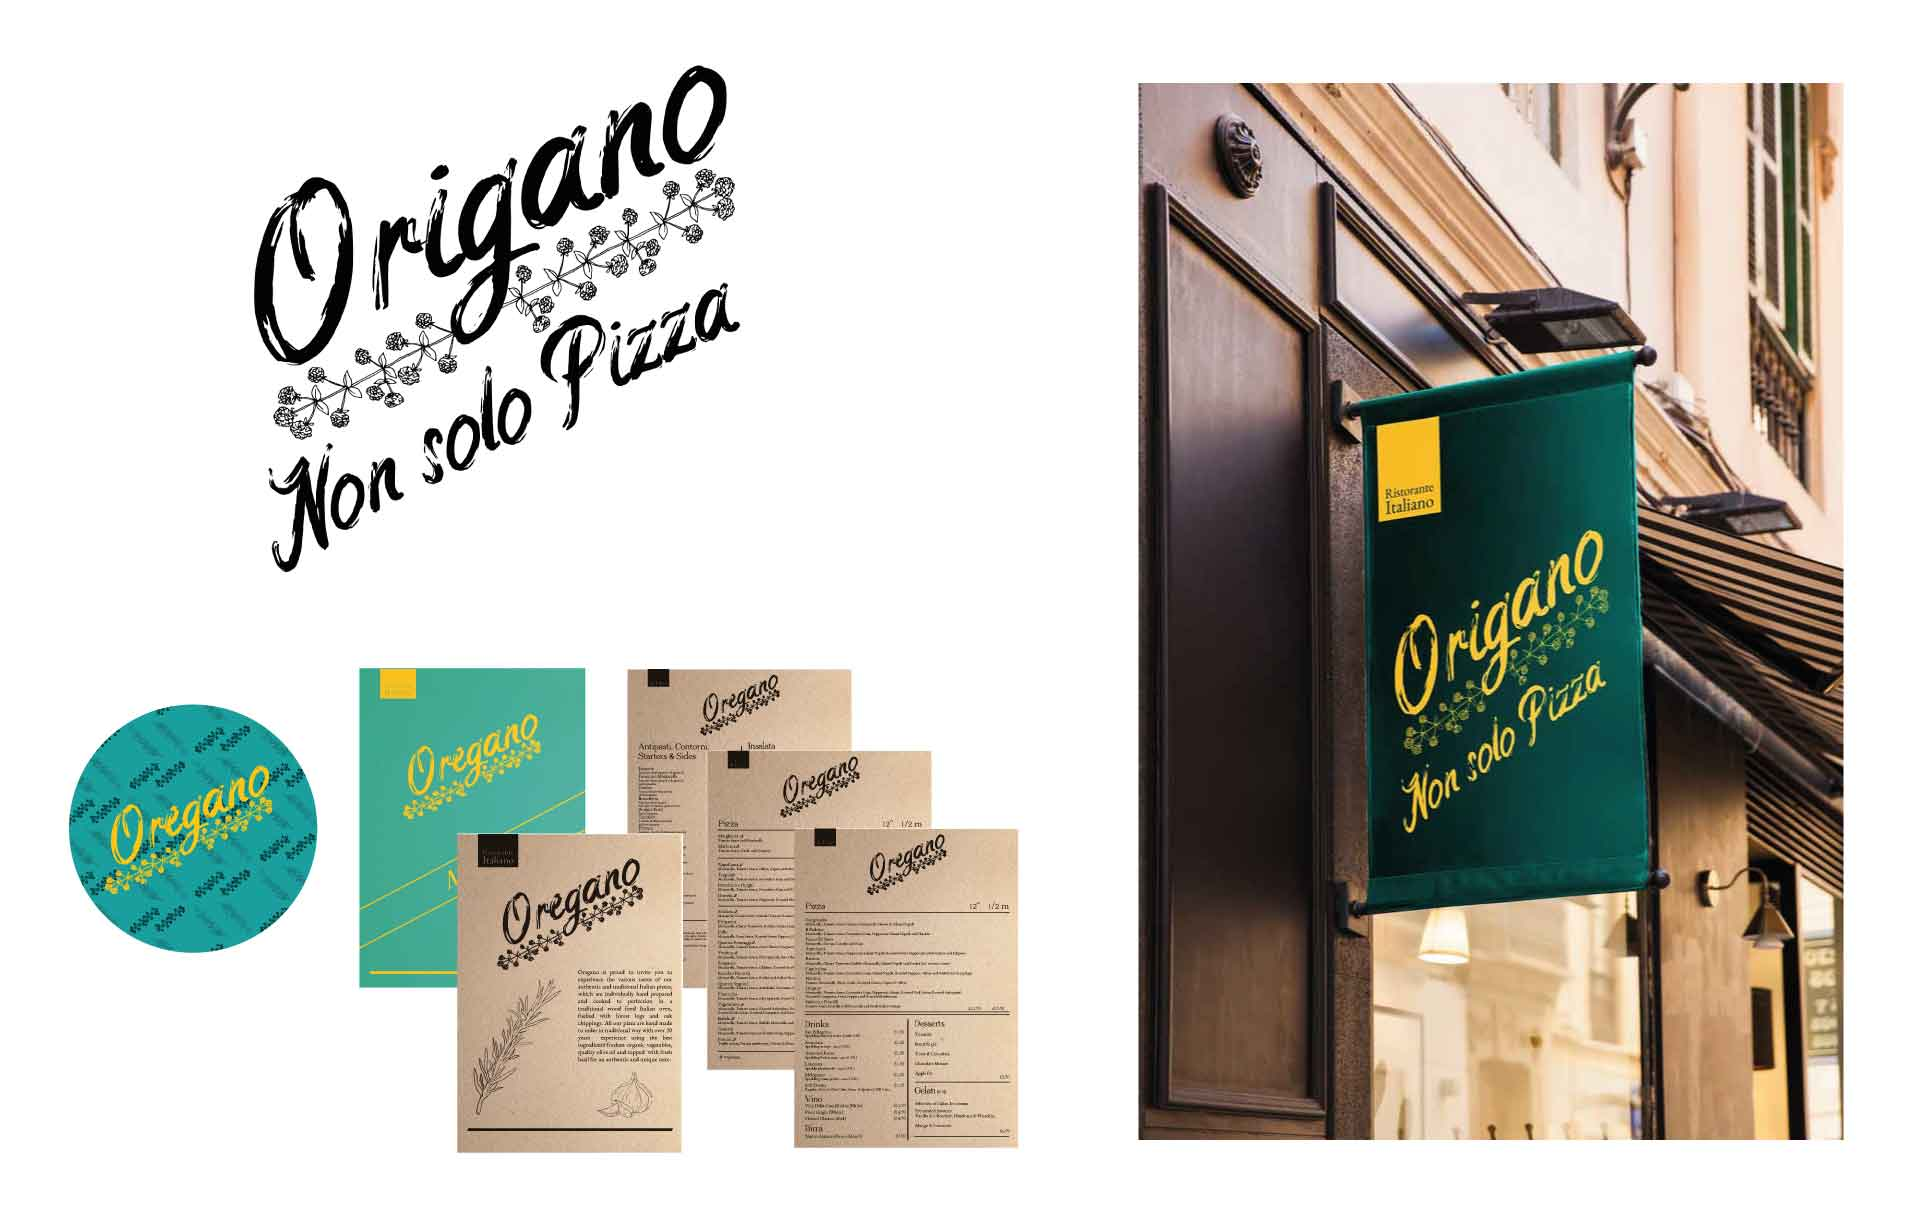 oregano menu ristorante italiano logo web design moodmama web agency